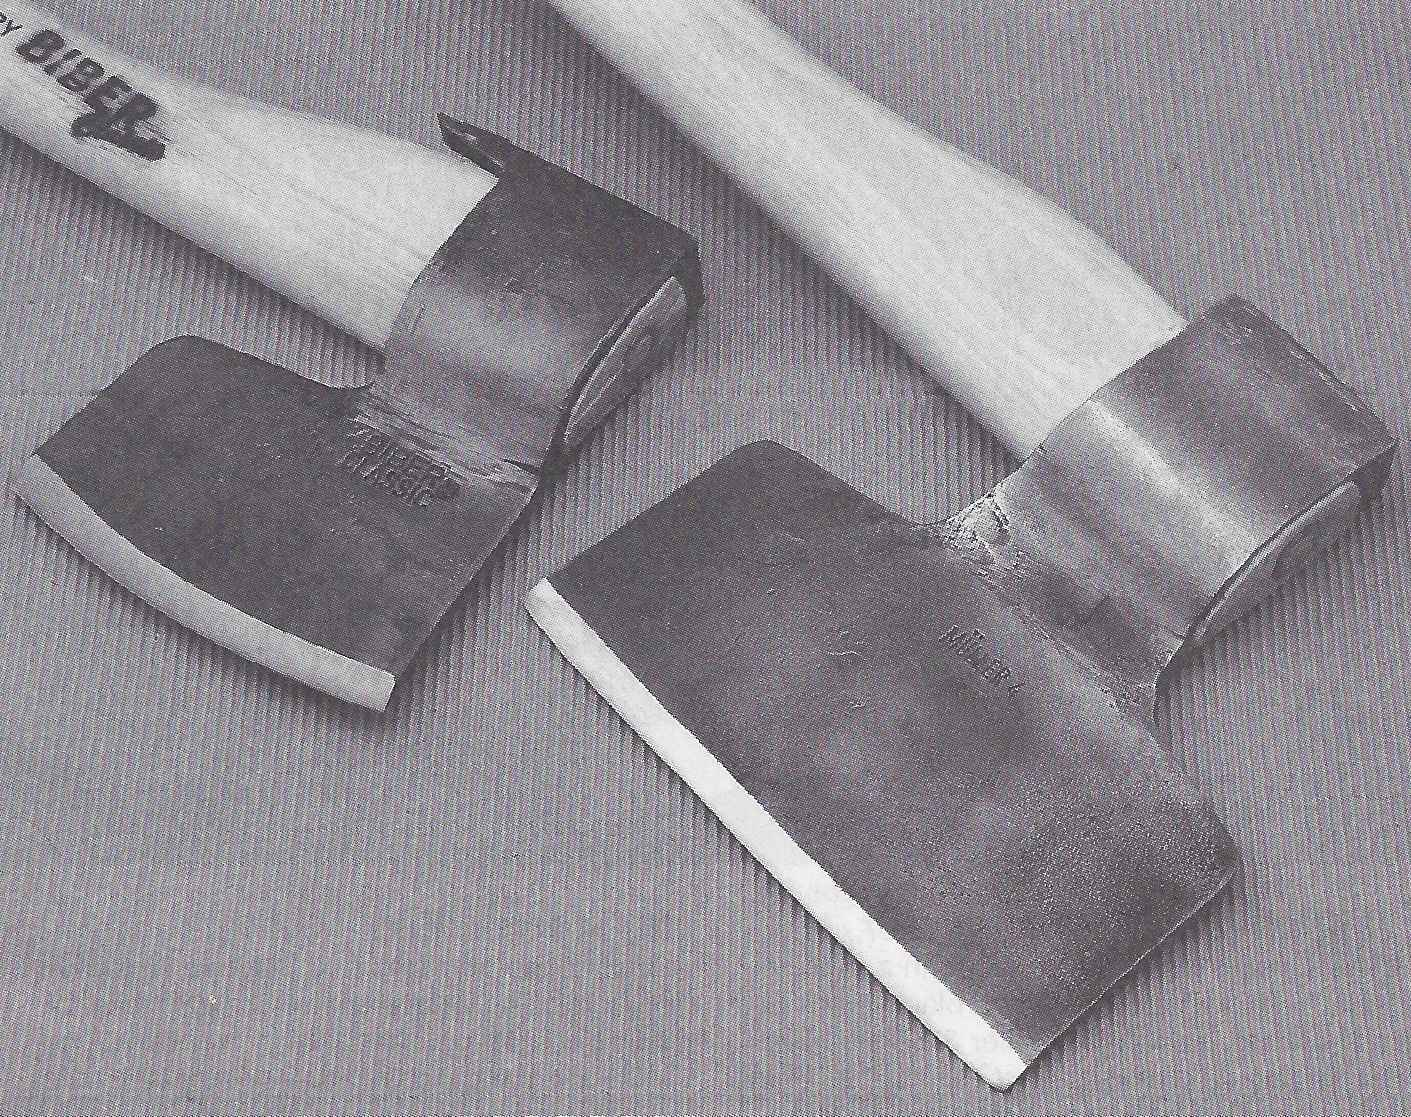 broad axes of today